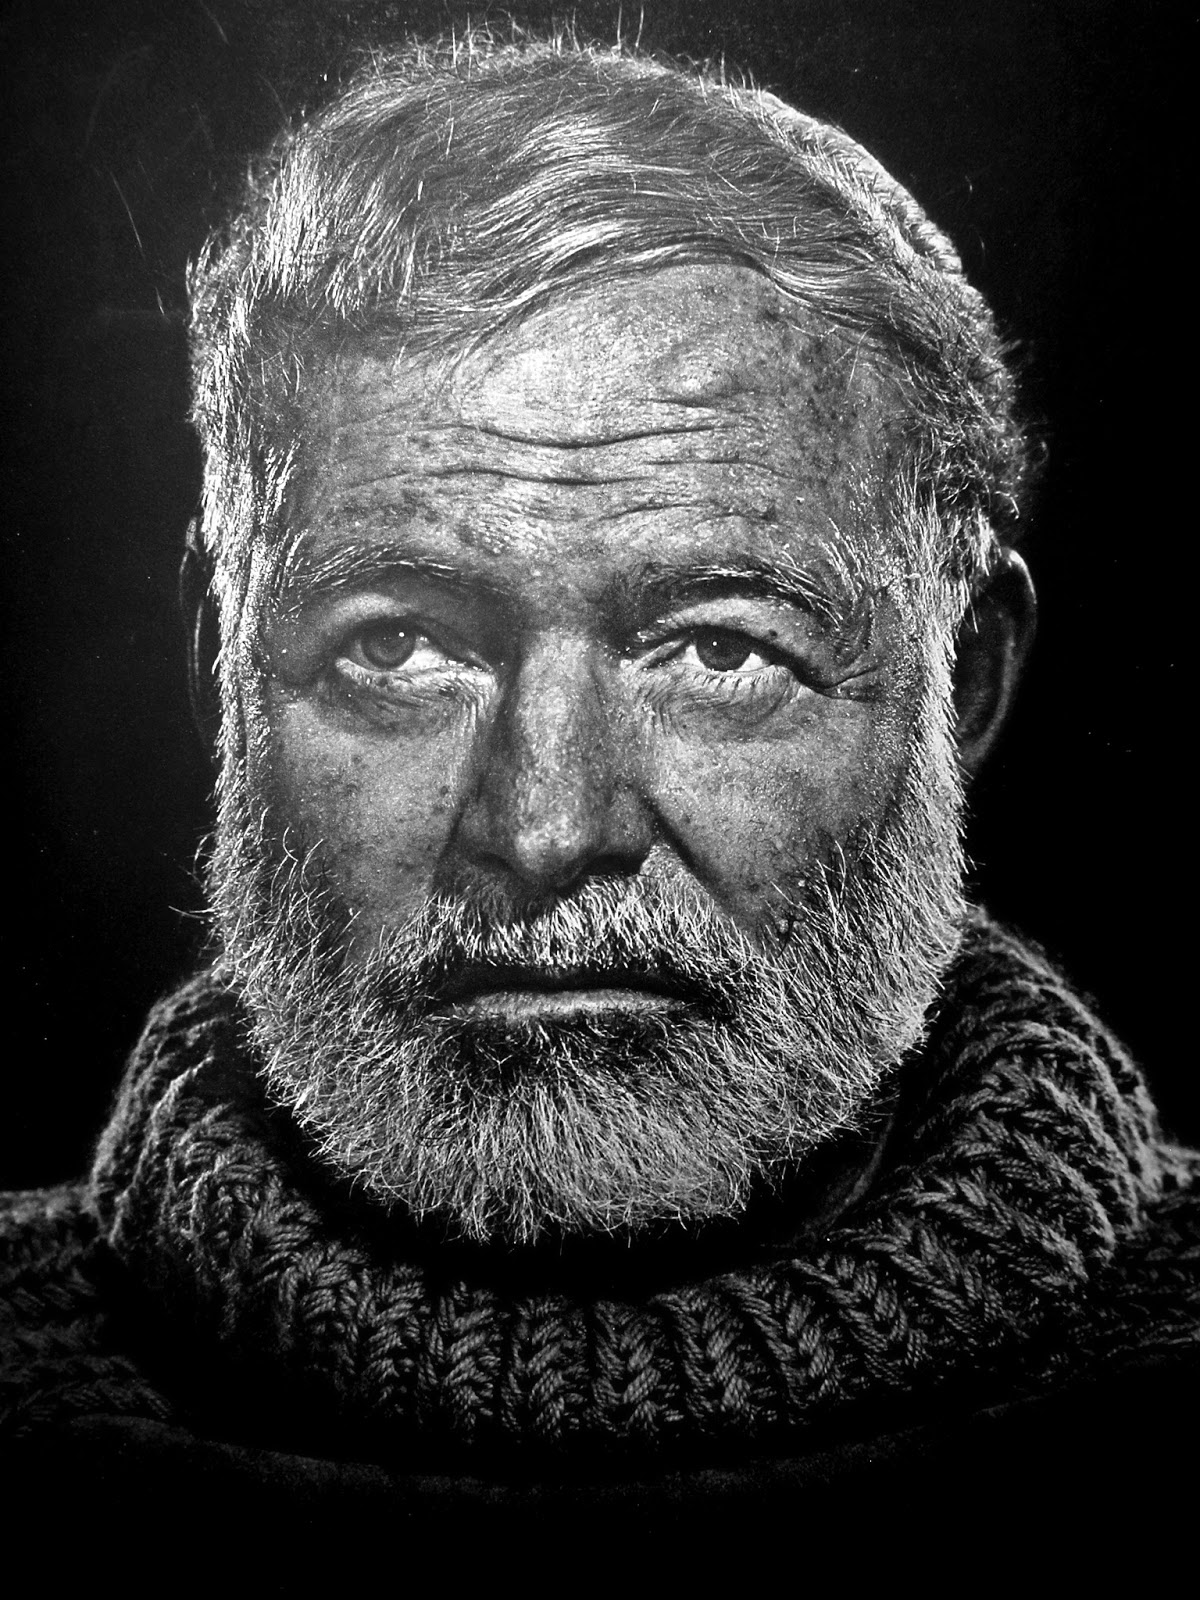 a biography of ernest hemingway and his influence on american literature Ernest hemingway, american nobel  fighting the feminine influence of his mother  for literature hemingway's declining physical condition .